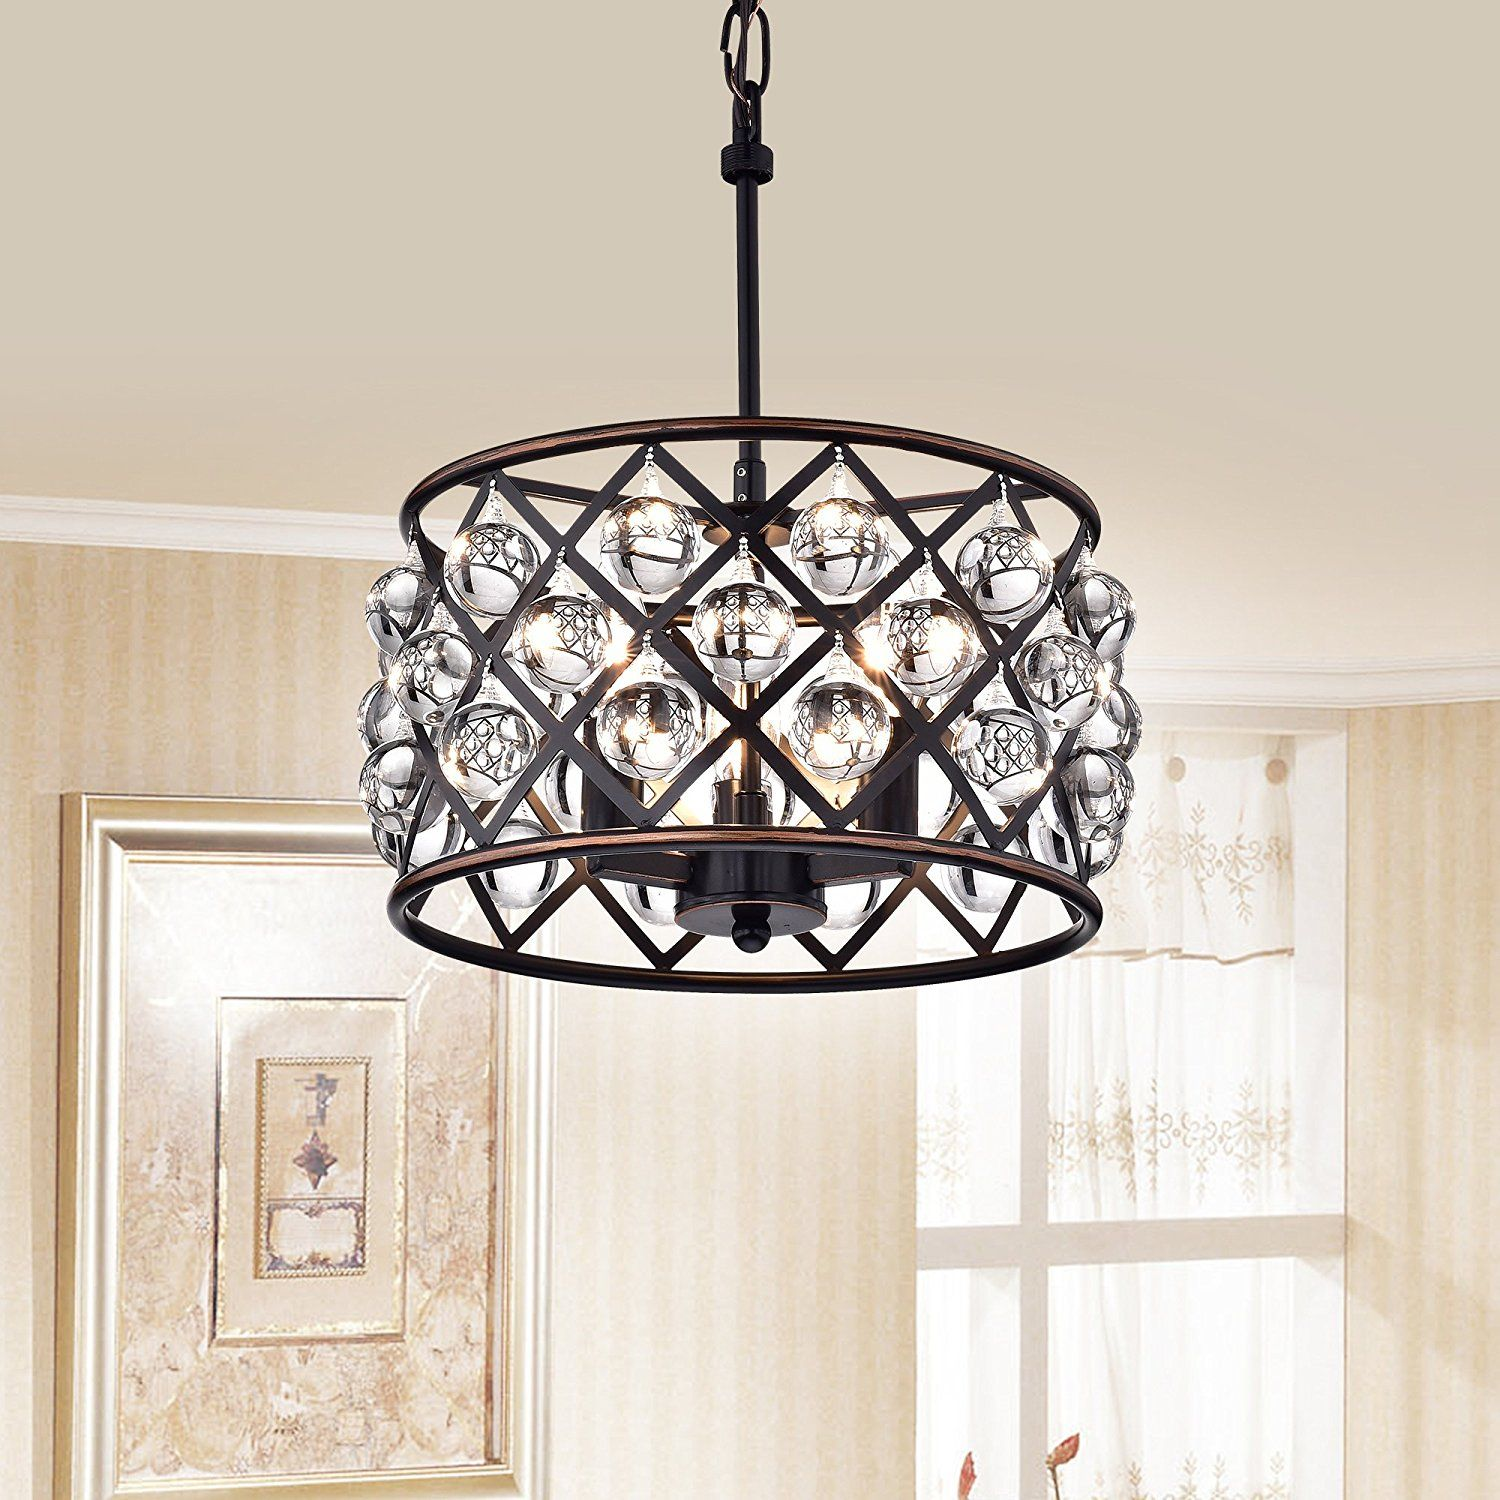 azha small 3 light crystal drum pendant chandelier oil rubbed bronze rh pinterest com